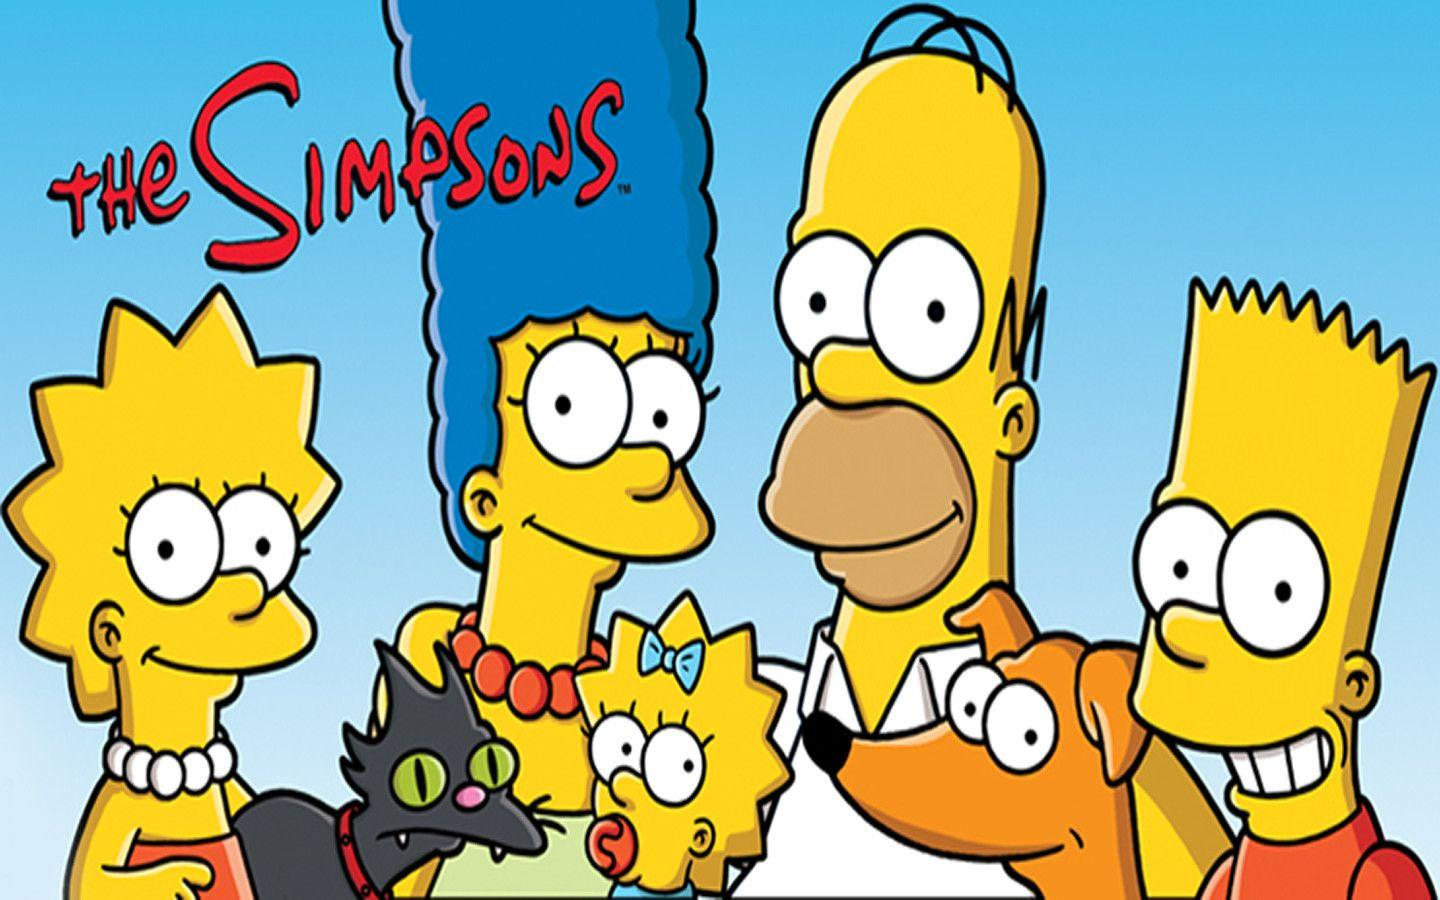 The Simpsons Family Introduction Desktop Wallpaper HD | Cartoons ...